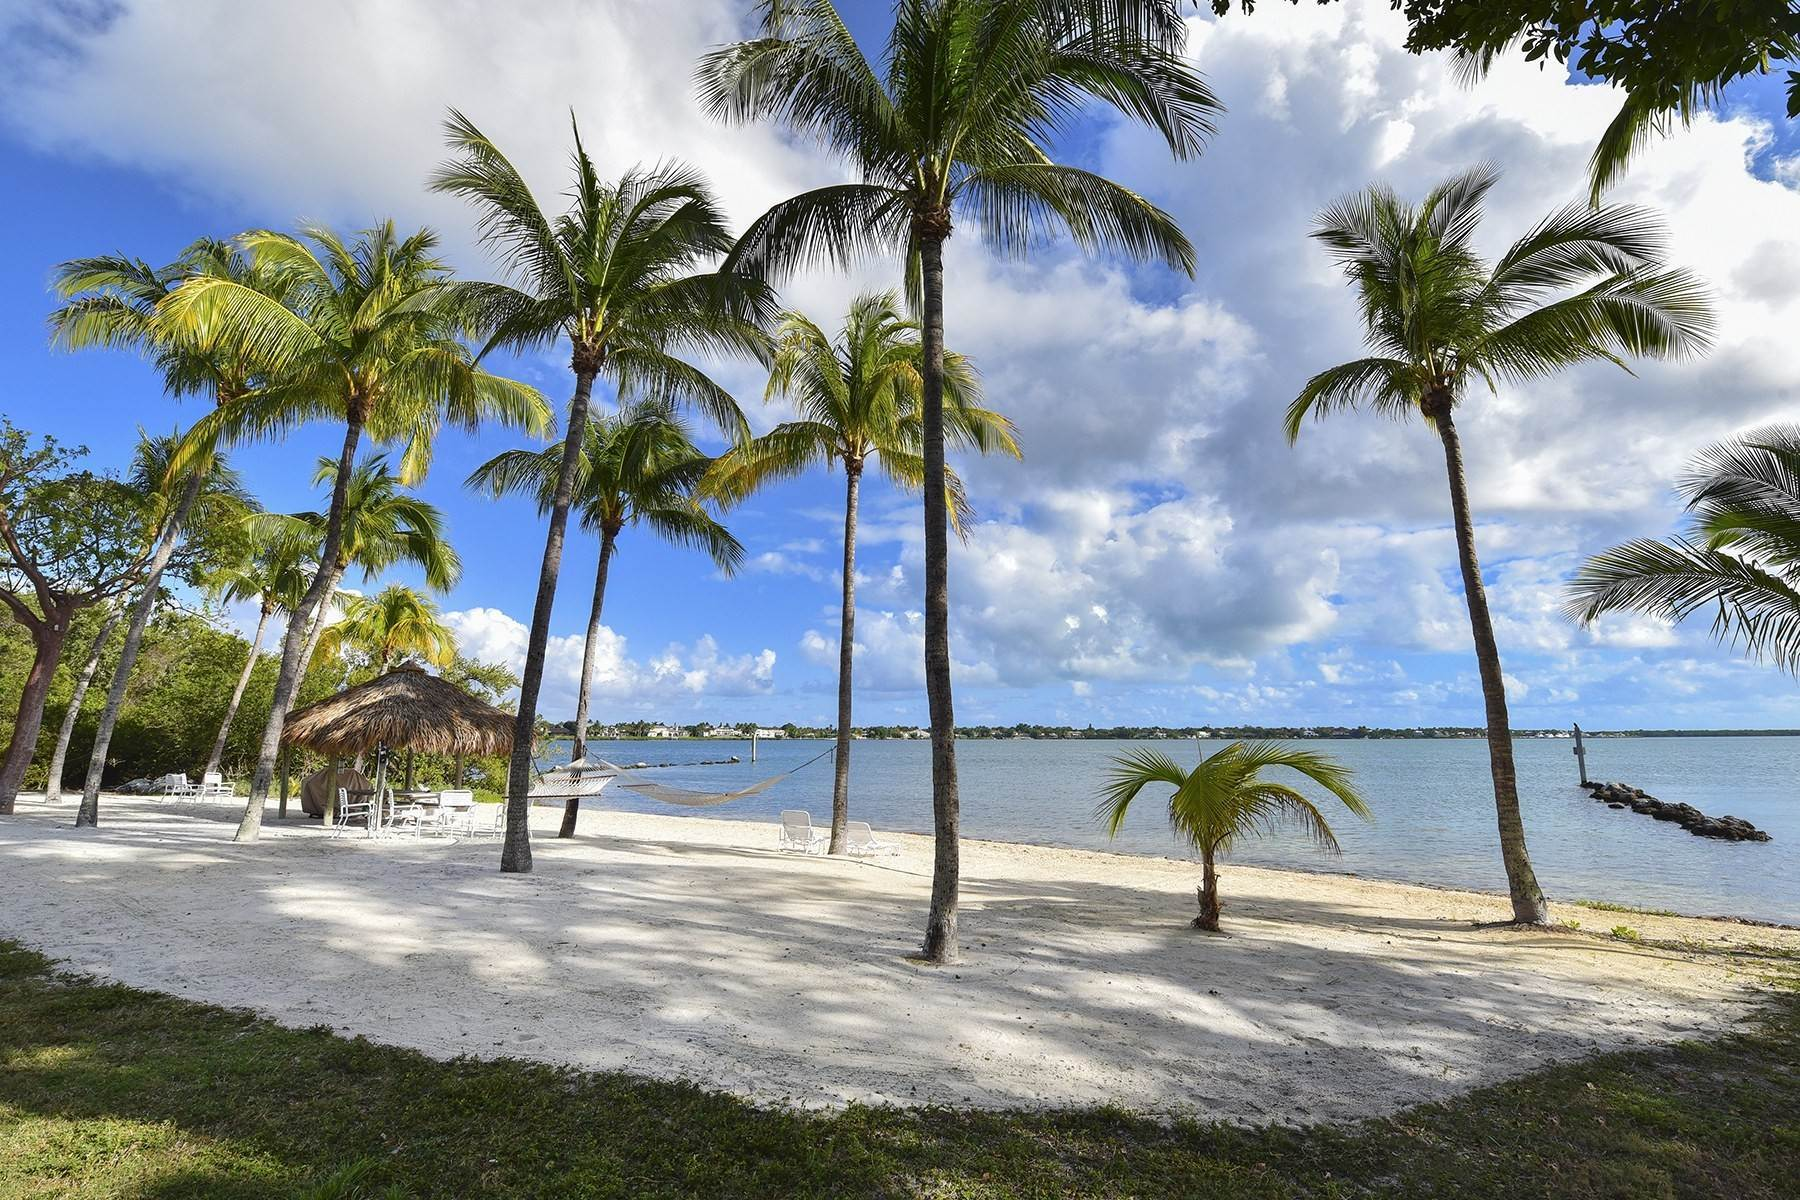 7. Property for Sale at Pumpkin Key - Private Island, Key Largo, FL Key Largo, Florida 33037 United States